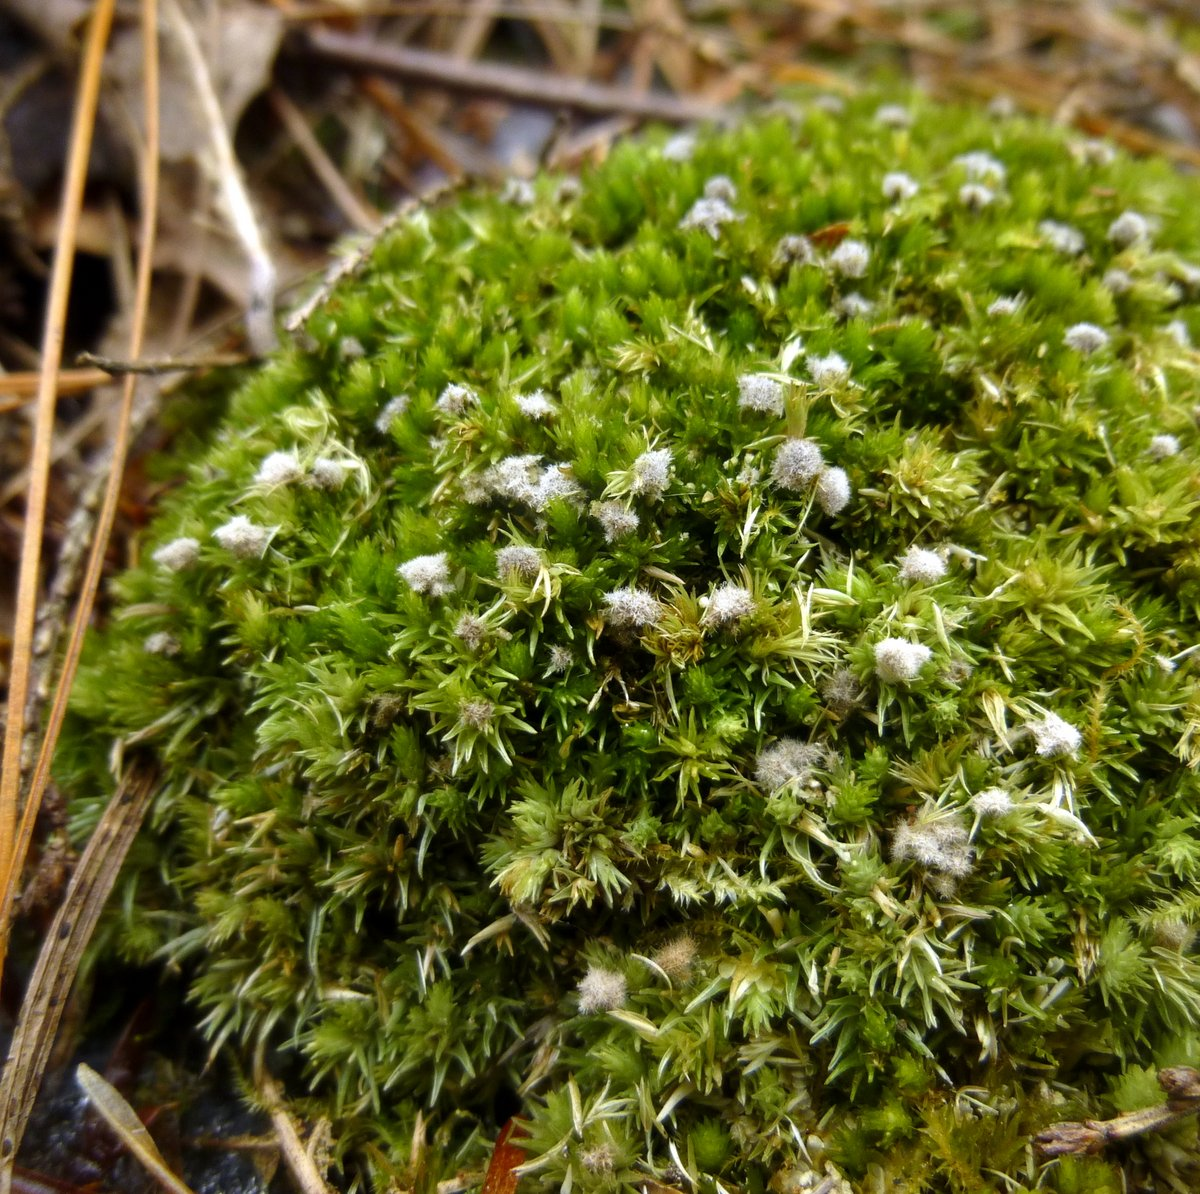 11. Moss With Unknown Growth